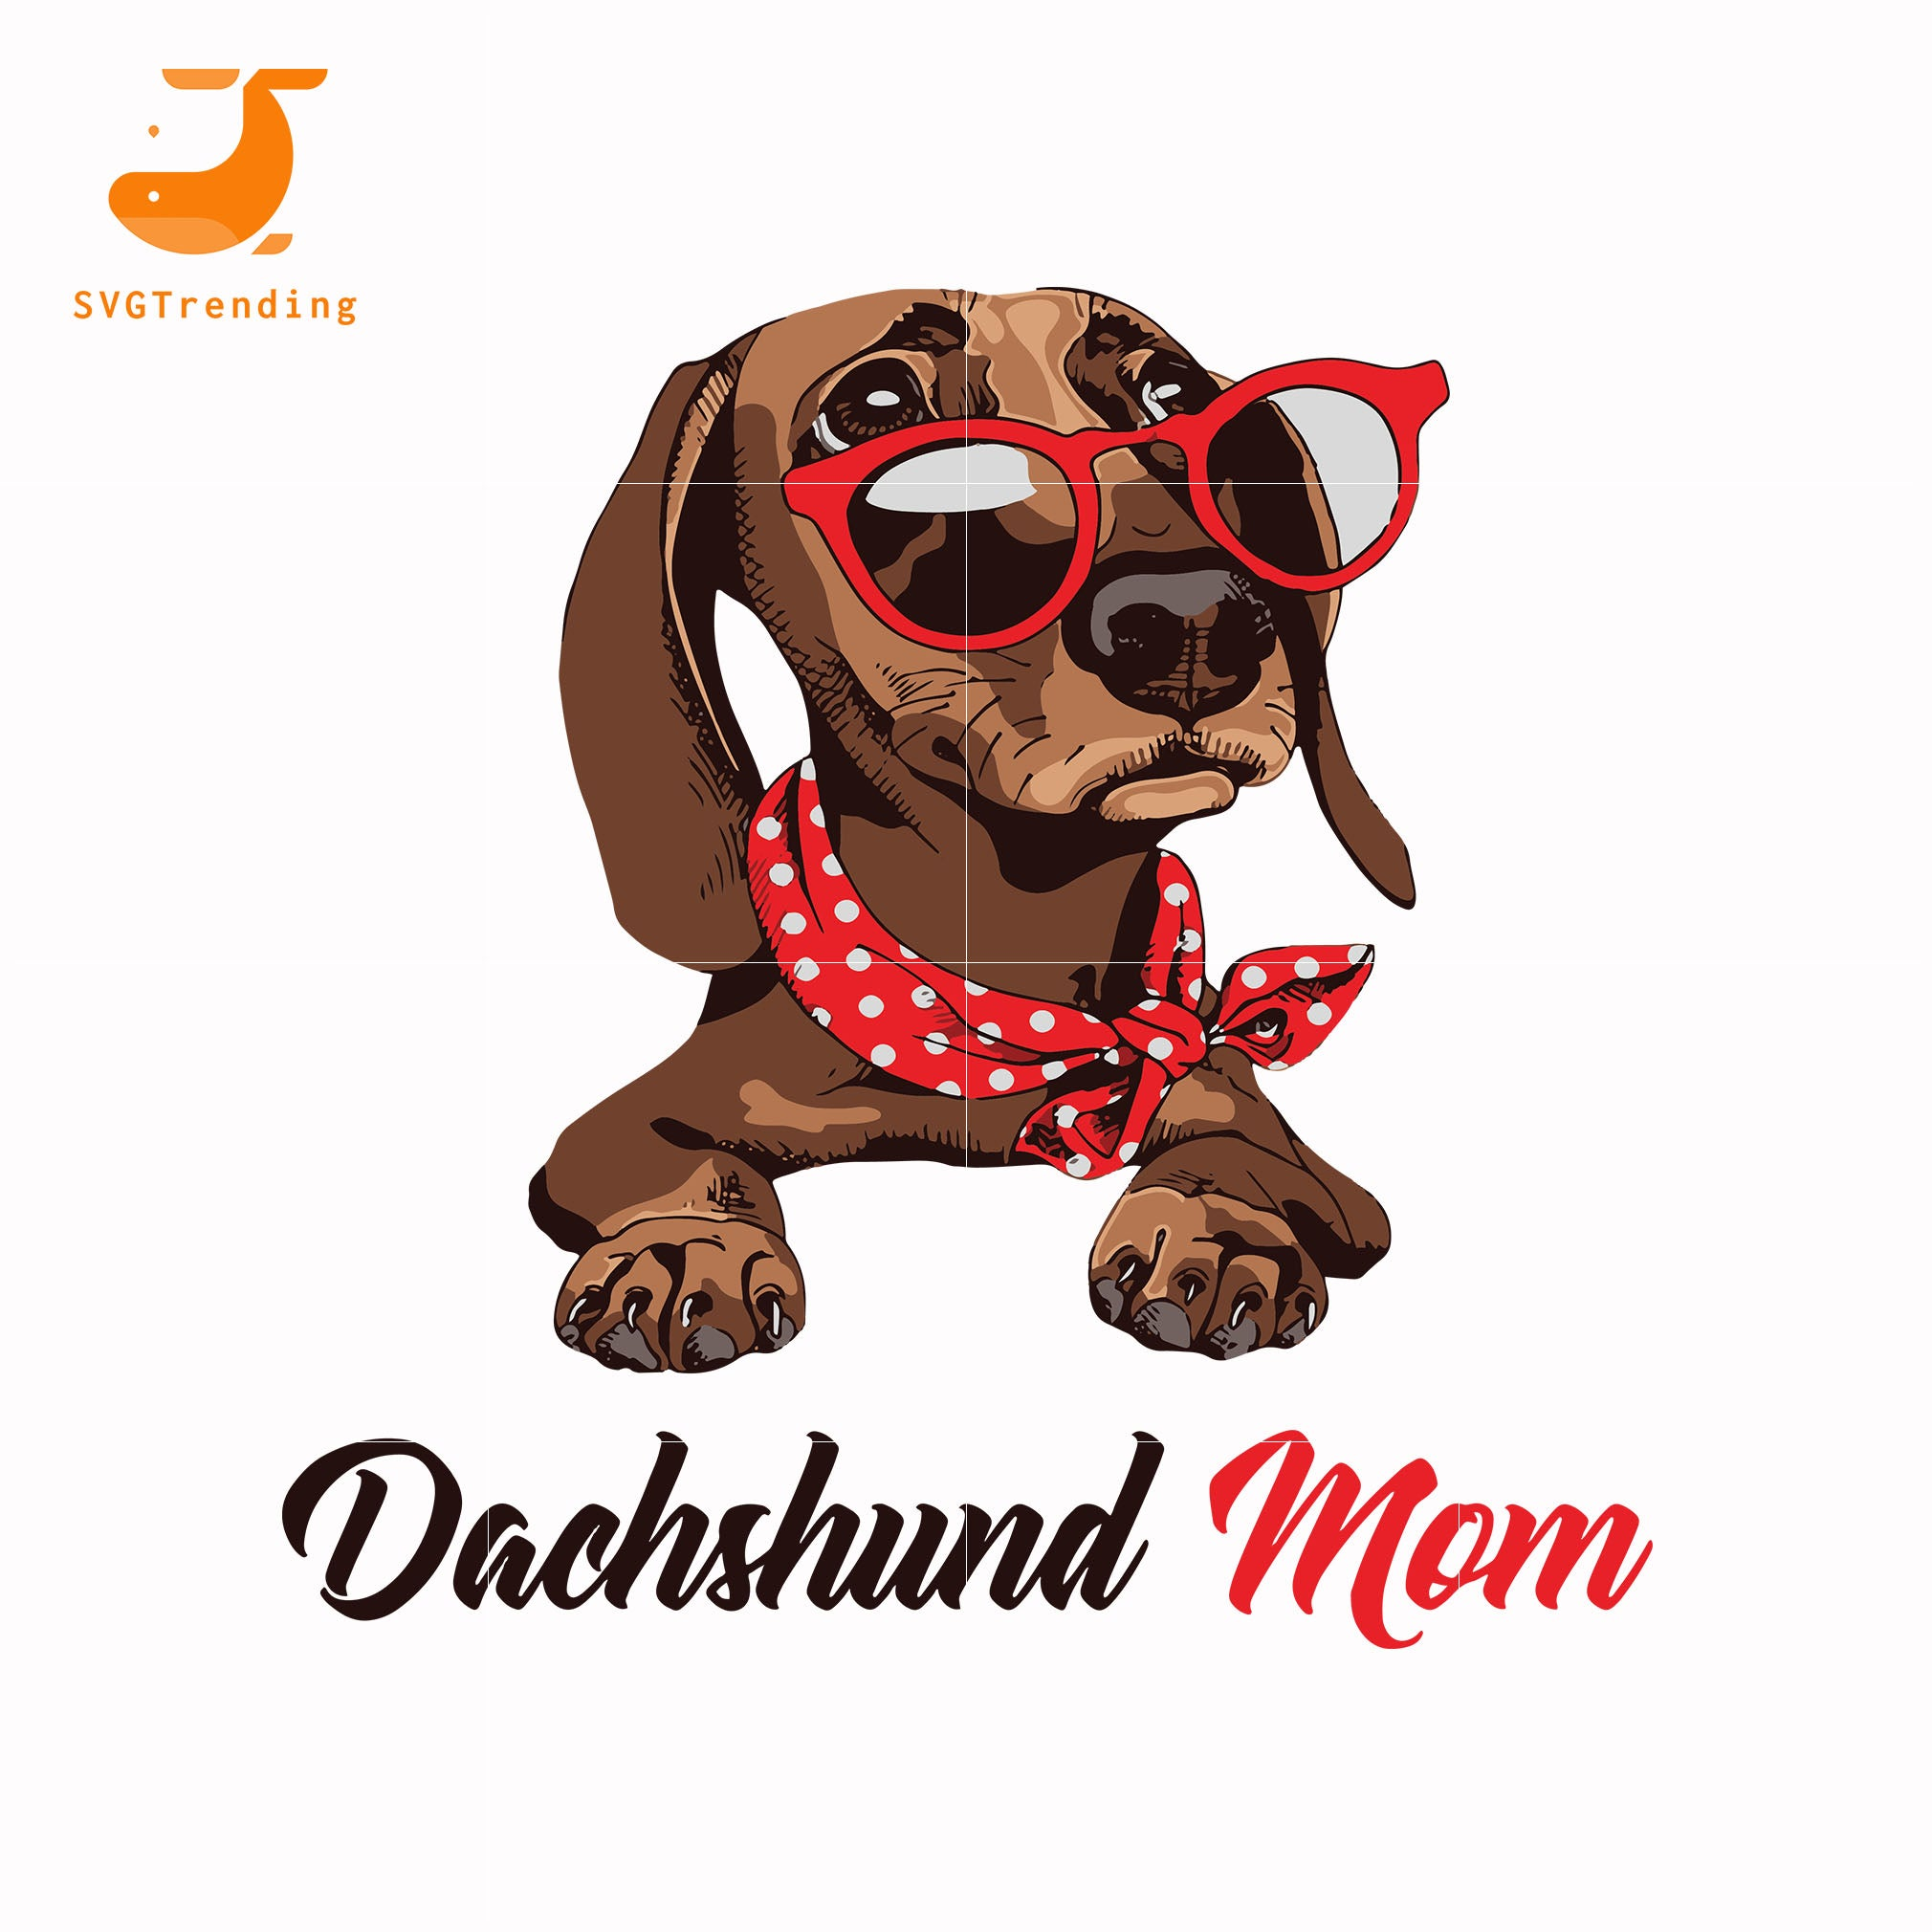 Dachshund mom svg, mother day svg, dxf, eps, png digital file